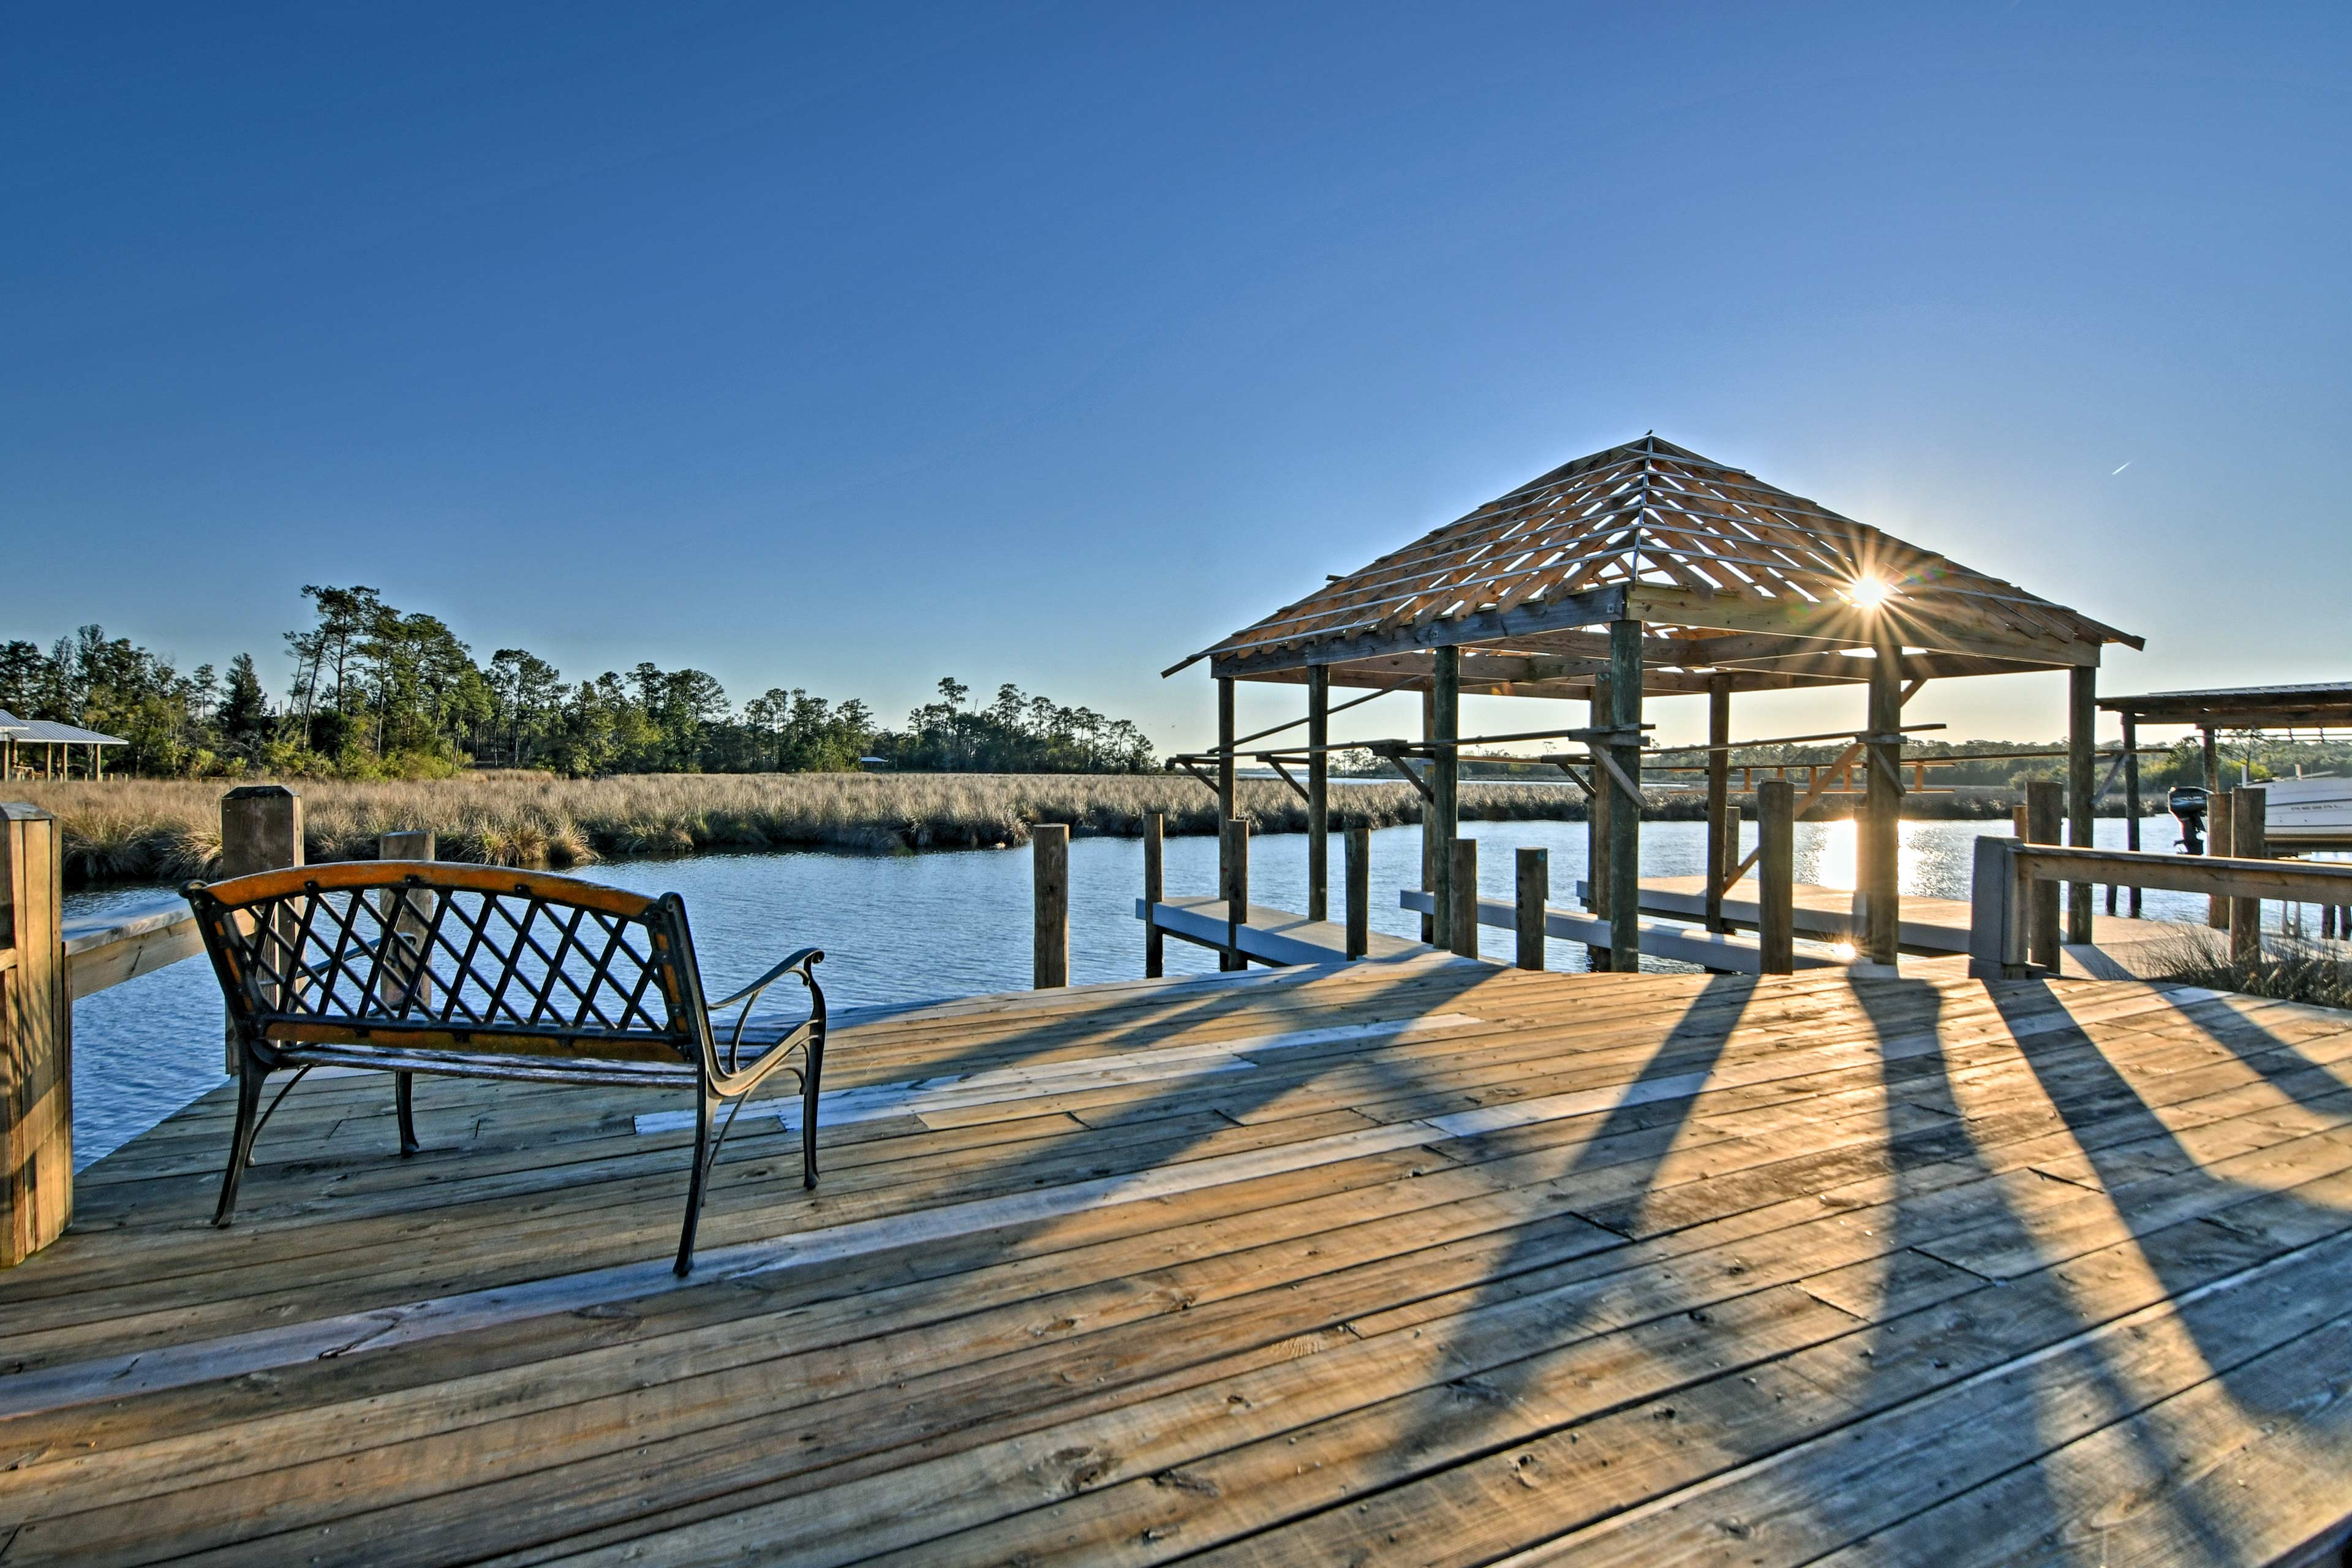 Tie your boat up to the dock and watch the sunset.